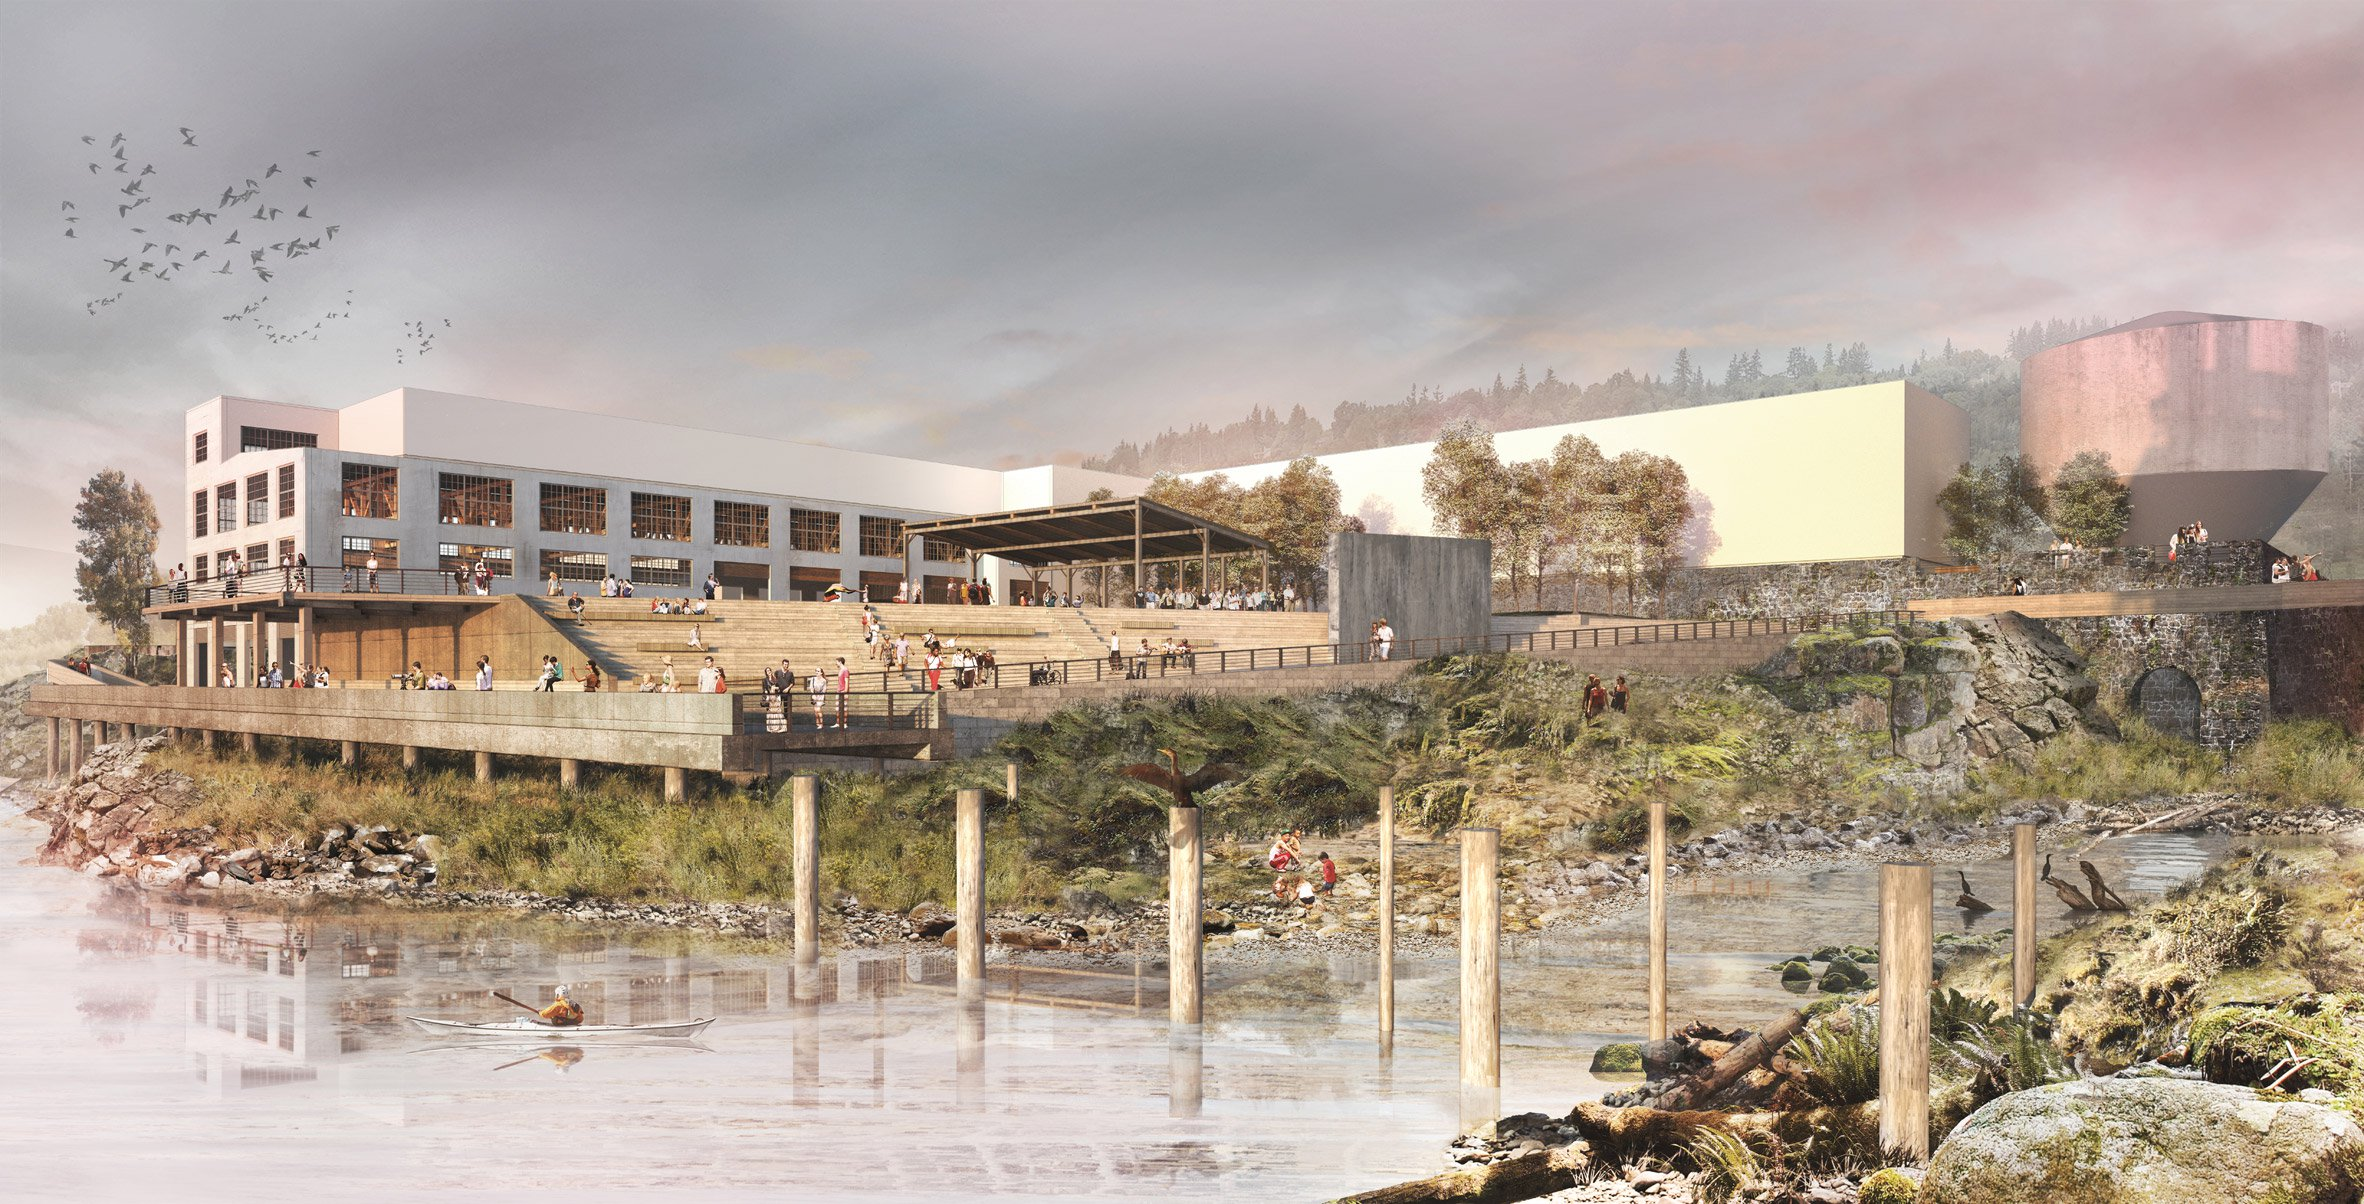 Snøhetta set to overhaul former paper mill to offer views of Oregon waterfall